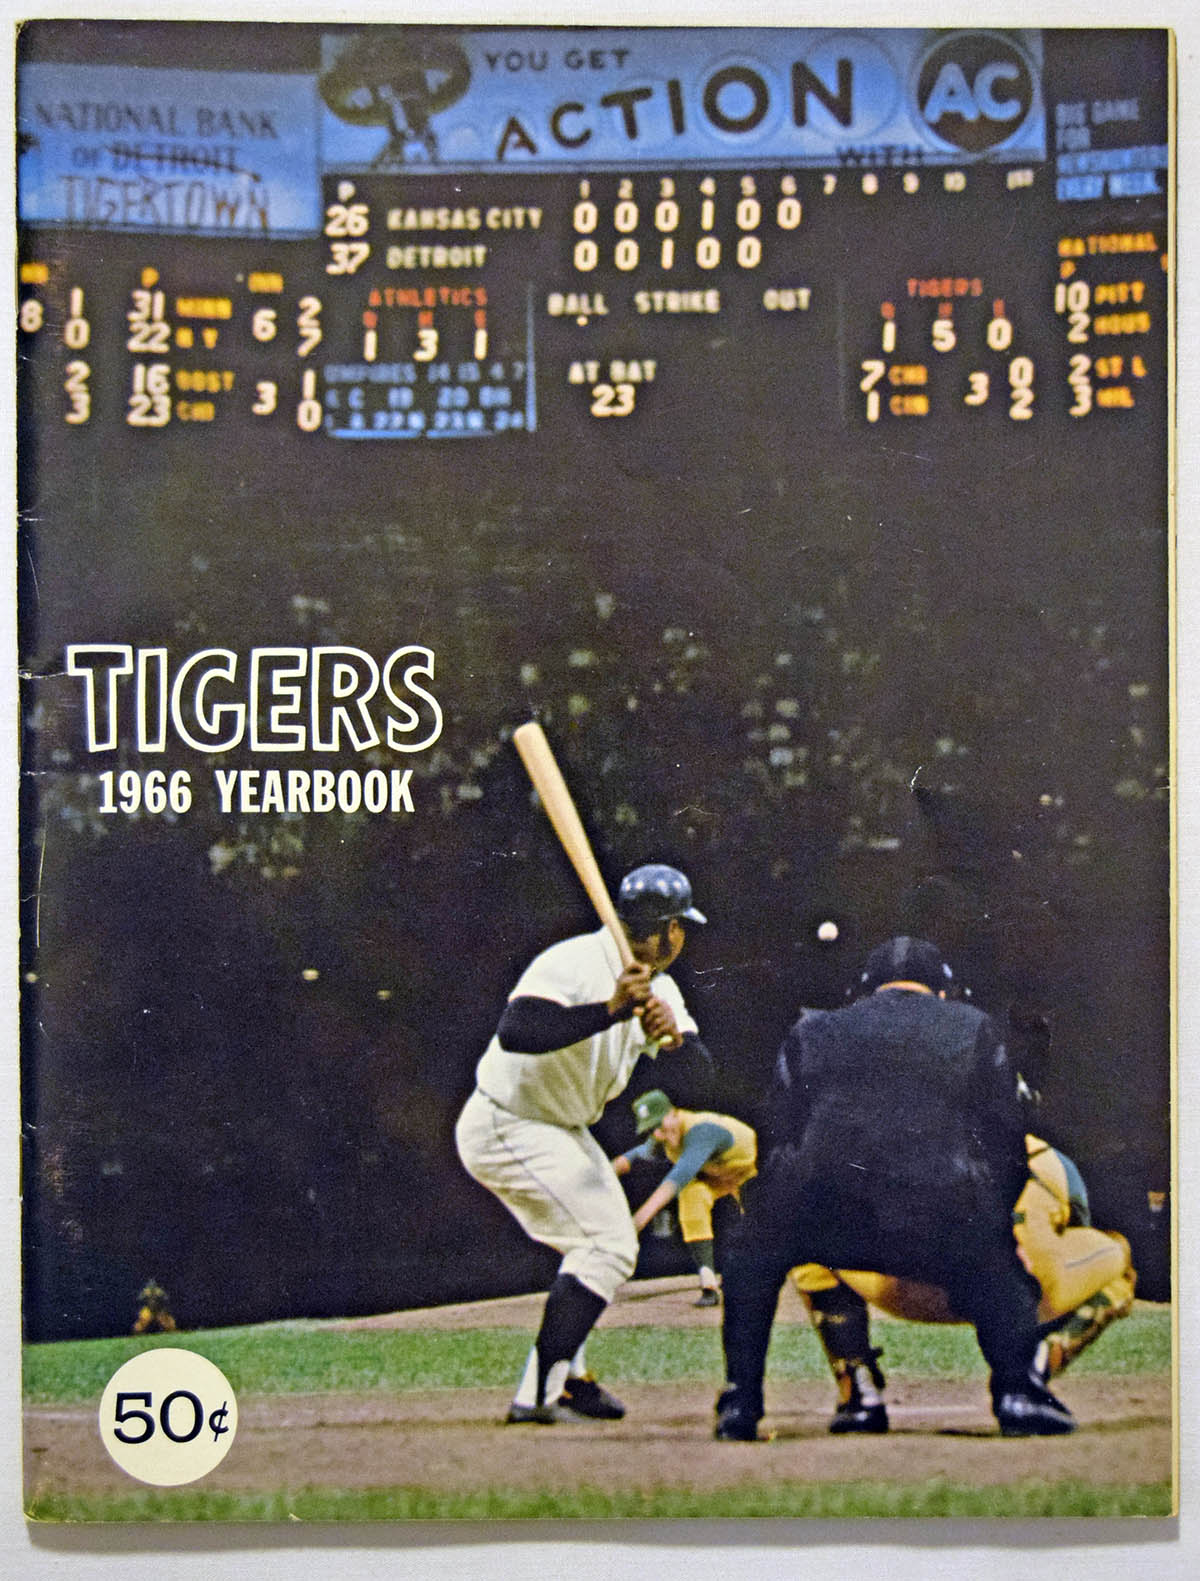 Lot #1755 1966 Yearbook  Detroit Tigers Cond: Ex-Mt+